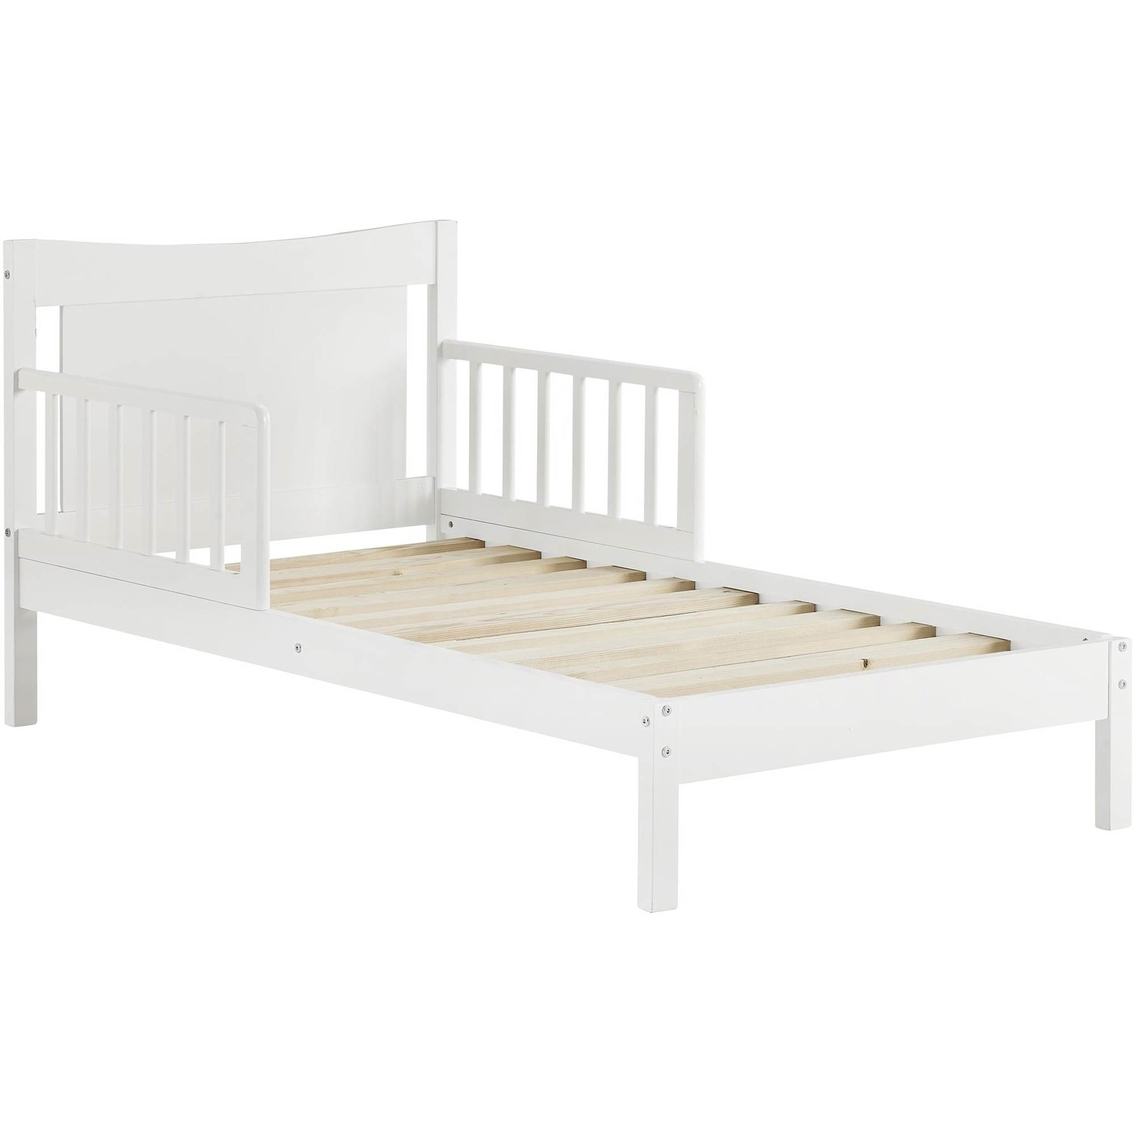 Dorel Juvenile Baby Relax Memphis Toddler Bed | Bedroom Furniture ...